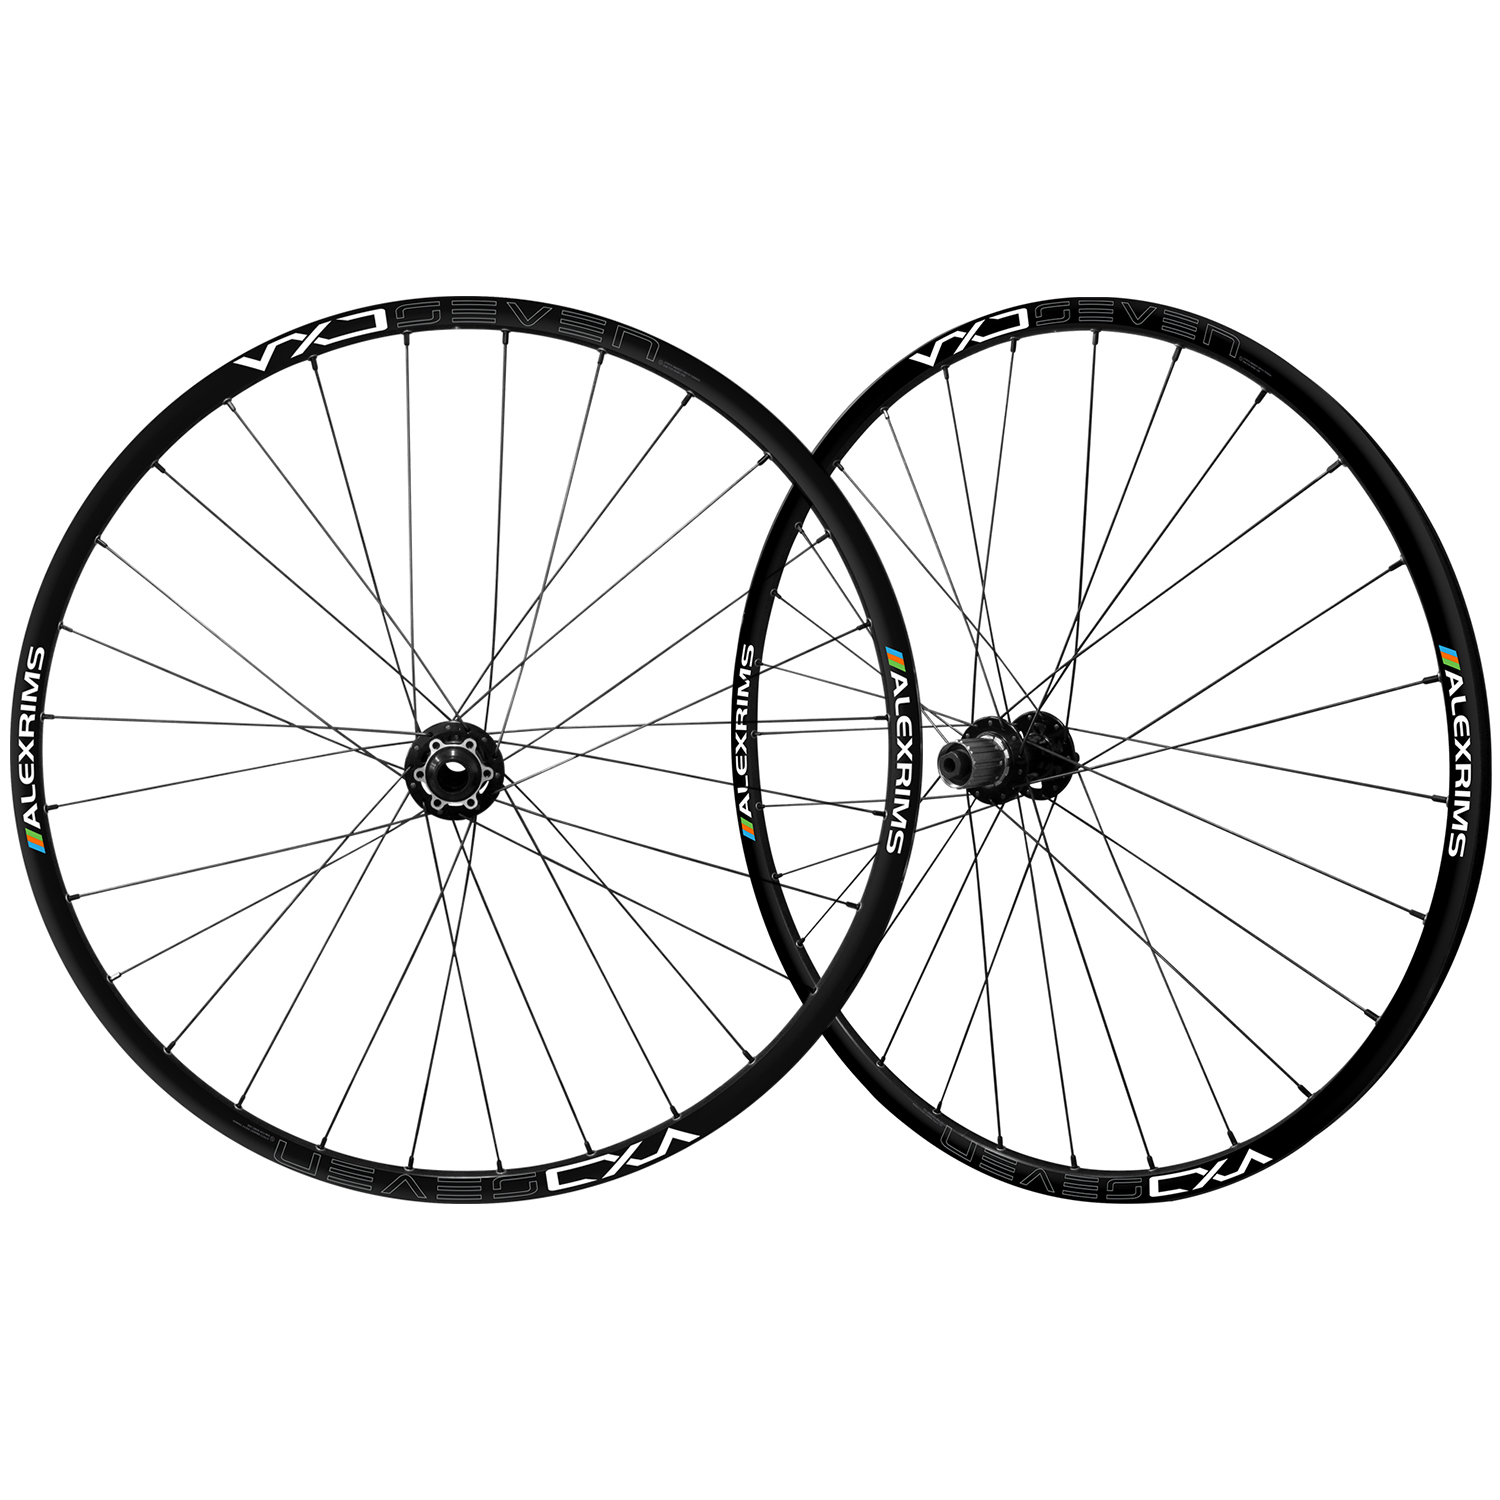 Alex VXD7 MTB Wheelset - 27.5""